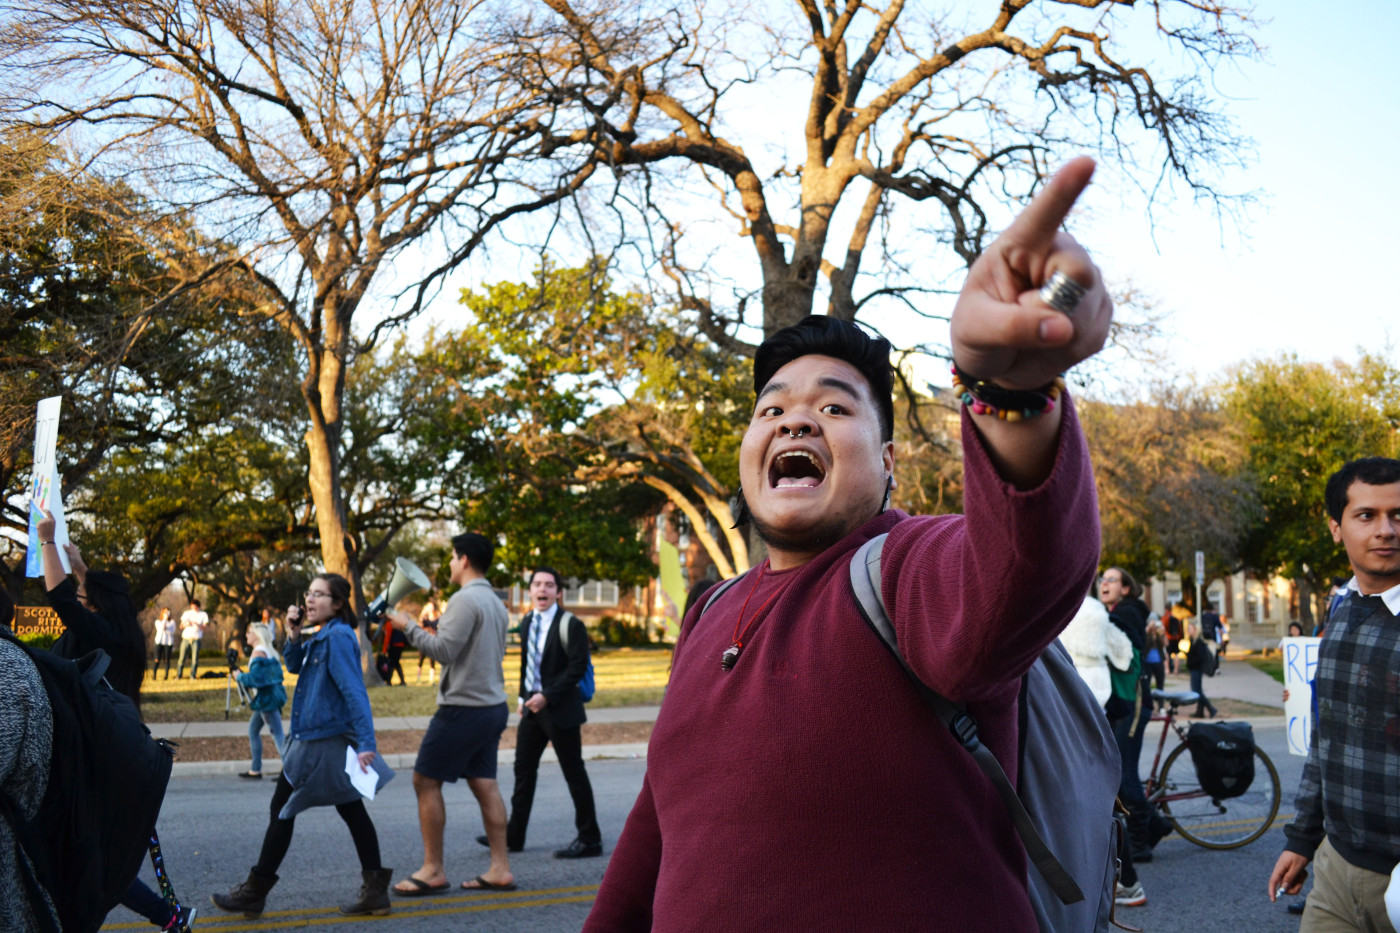 Philip Olalo, third year international relations, shouts back at an onlooker, who disagreed with the march, at the United Against Racist March on February 12, 2015 in Austin, Texas. Olalo felt rage when the onlooker shouted that the group did not deserve respect.